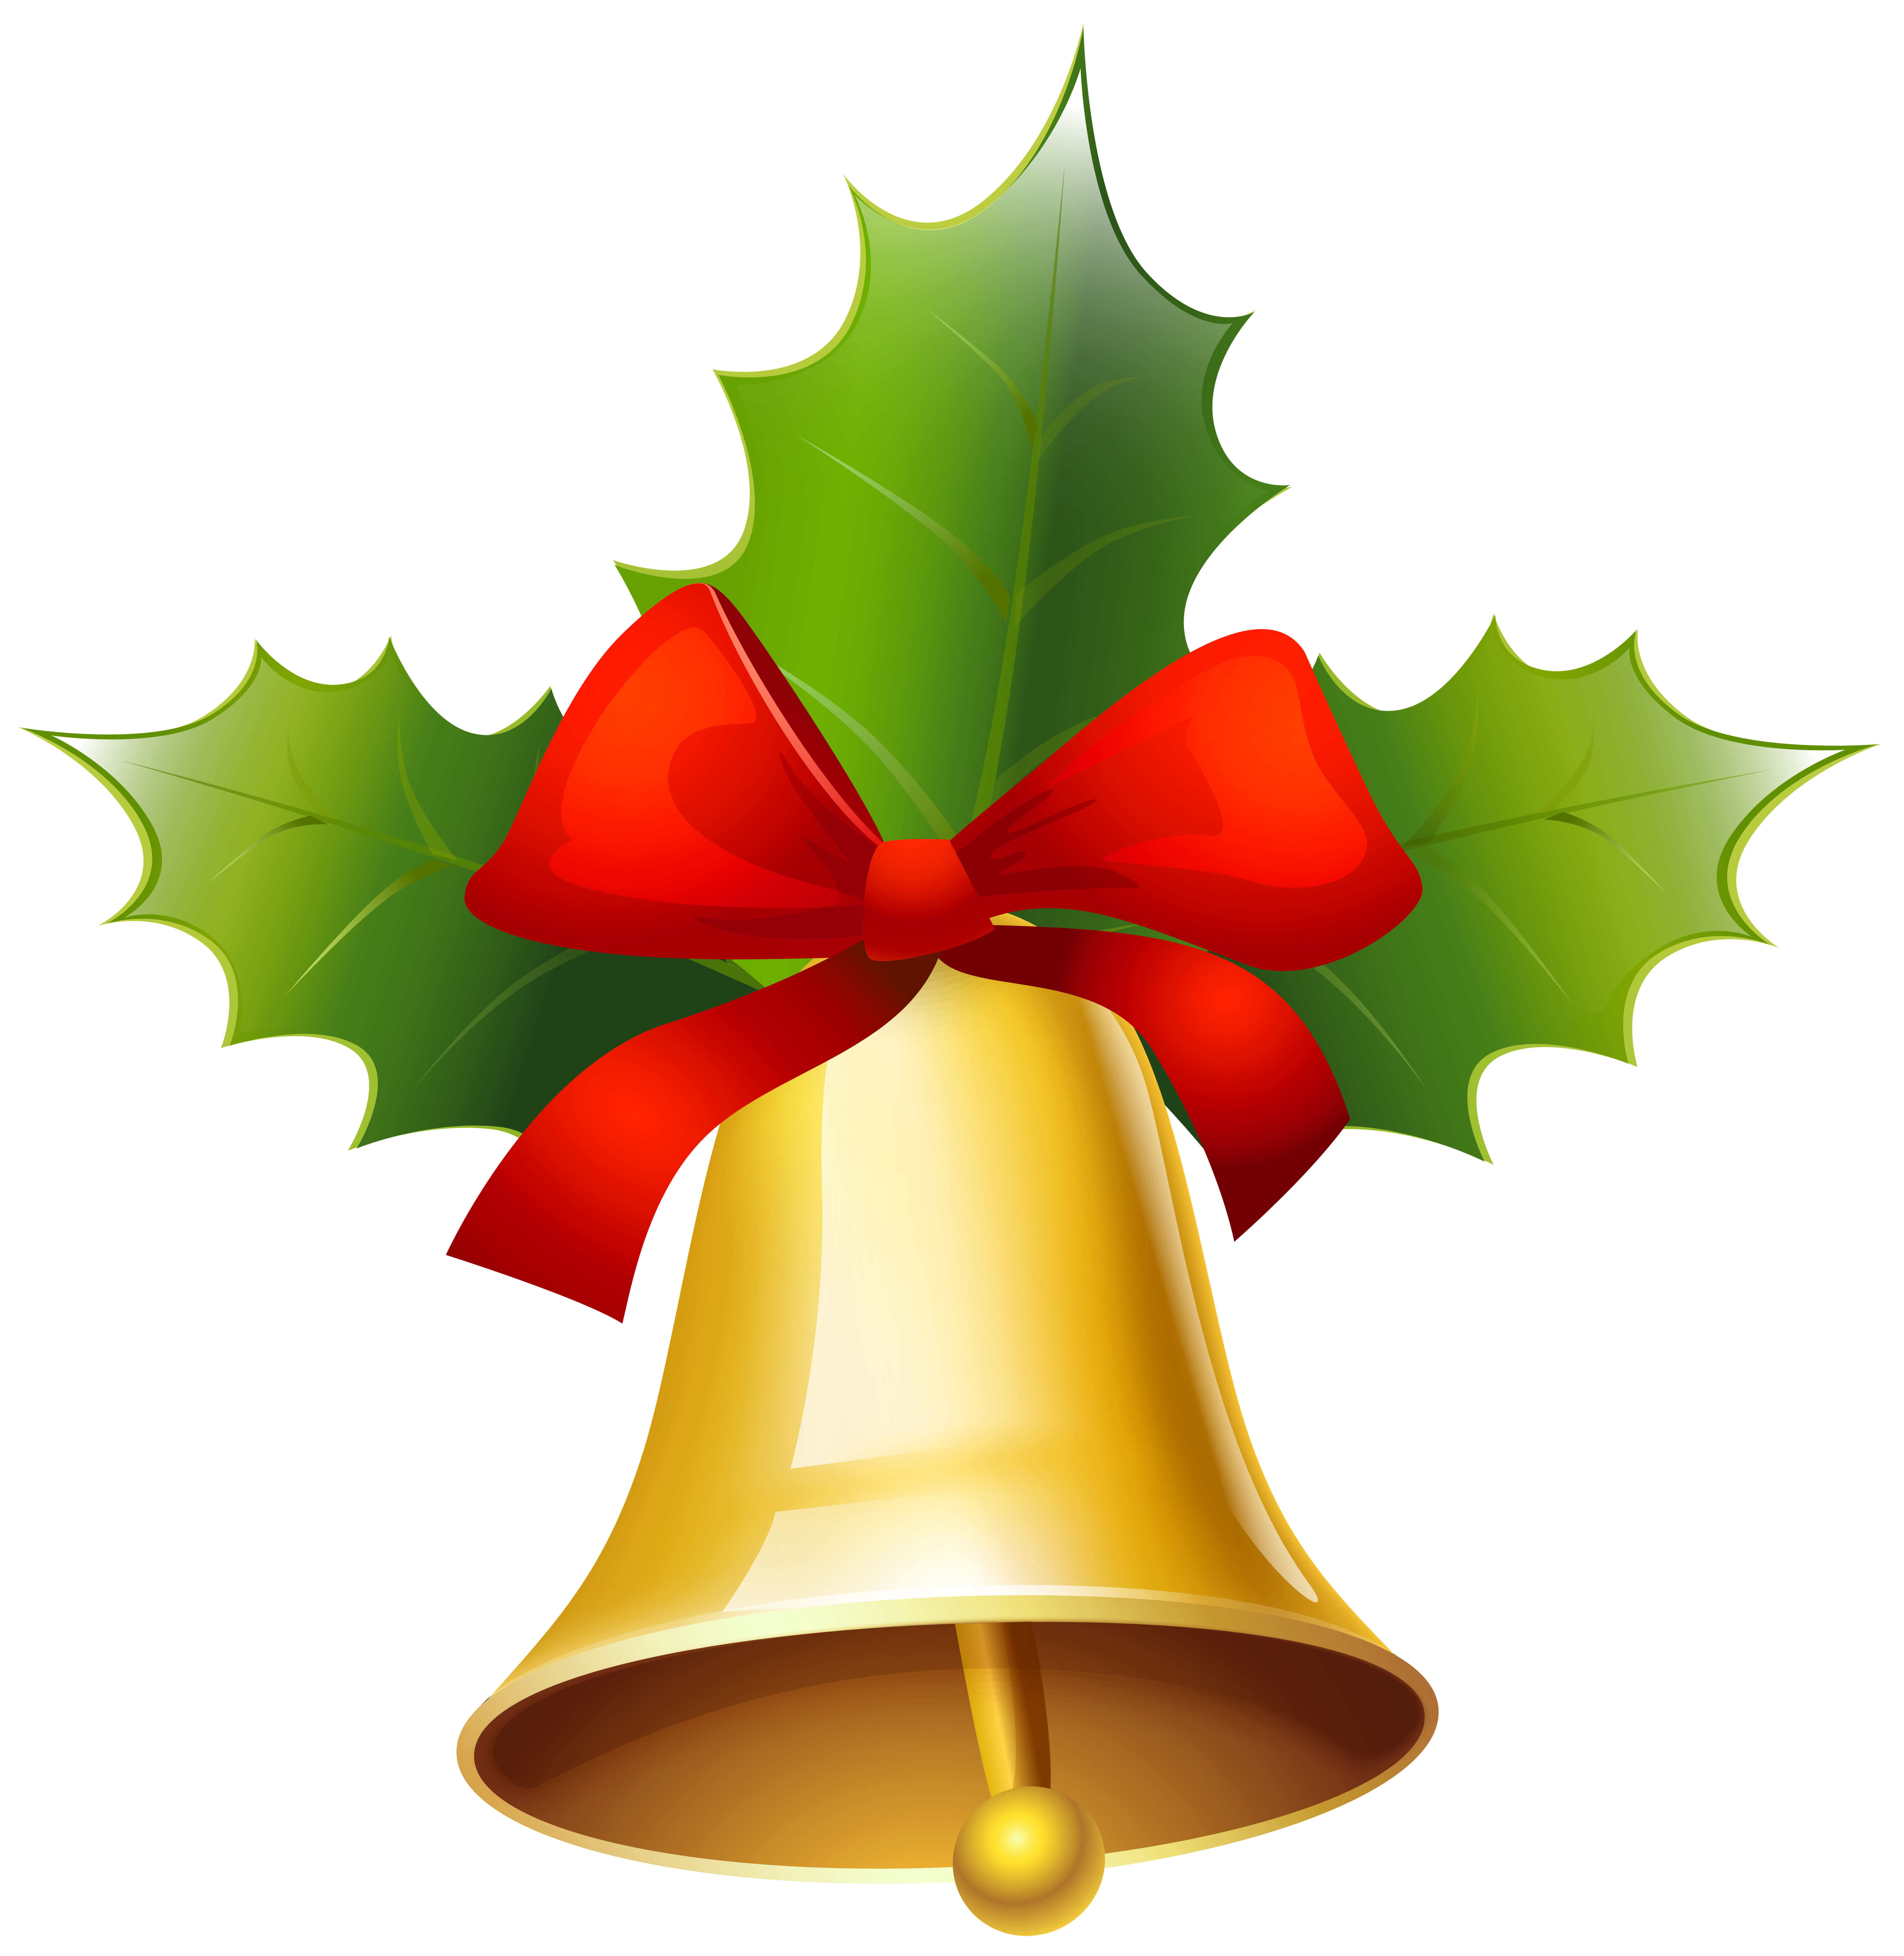 svg free download Christmas bells clipart. Golden bell png image